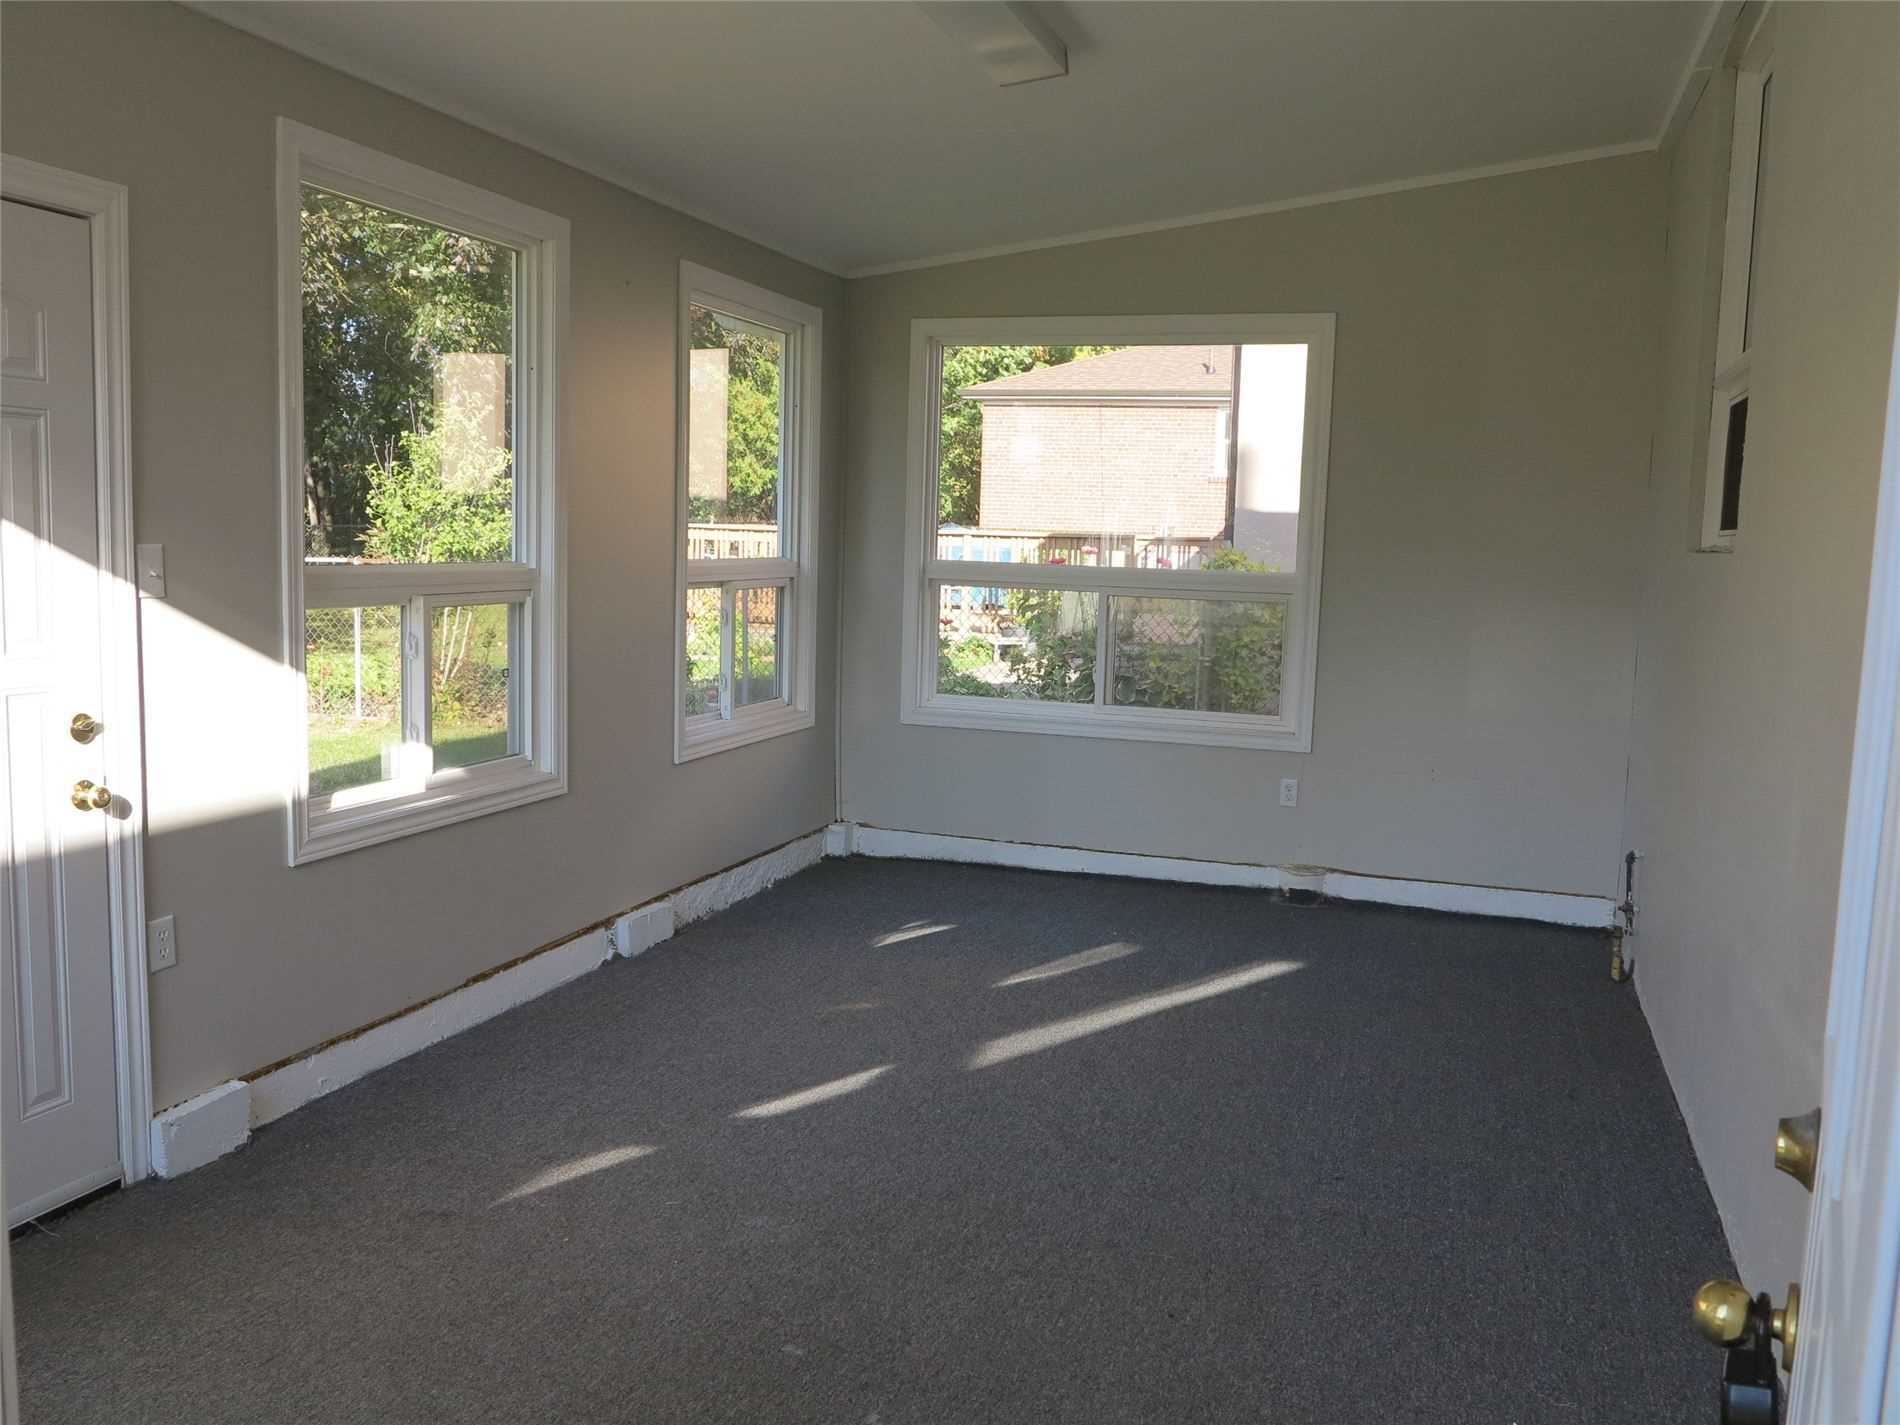 Image 28 of 30 showing inside of 3 Bedroom Detached Bungalow for Lease at 456 Drewry Ave, Toronto M2R2K7